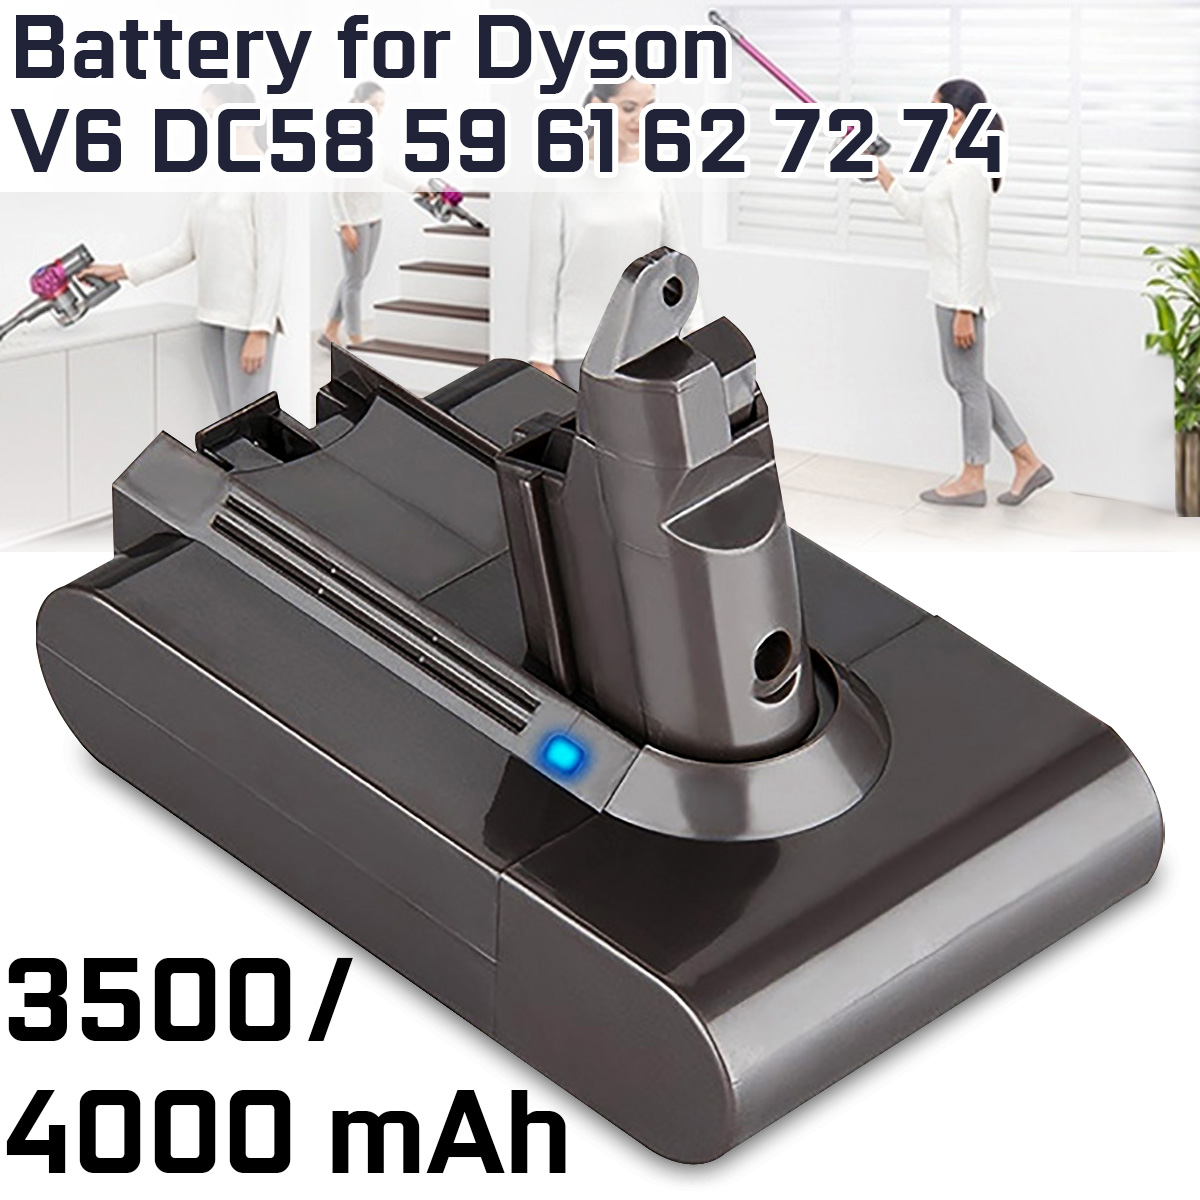 4000mAh 3500mAh Vacuum Cleaner Battery For Dyson V6 DC58 59 61 62 72 74 Vacuum Cleaner Accessories Kit Replacement Battery